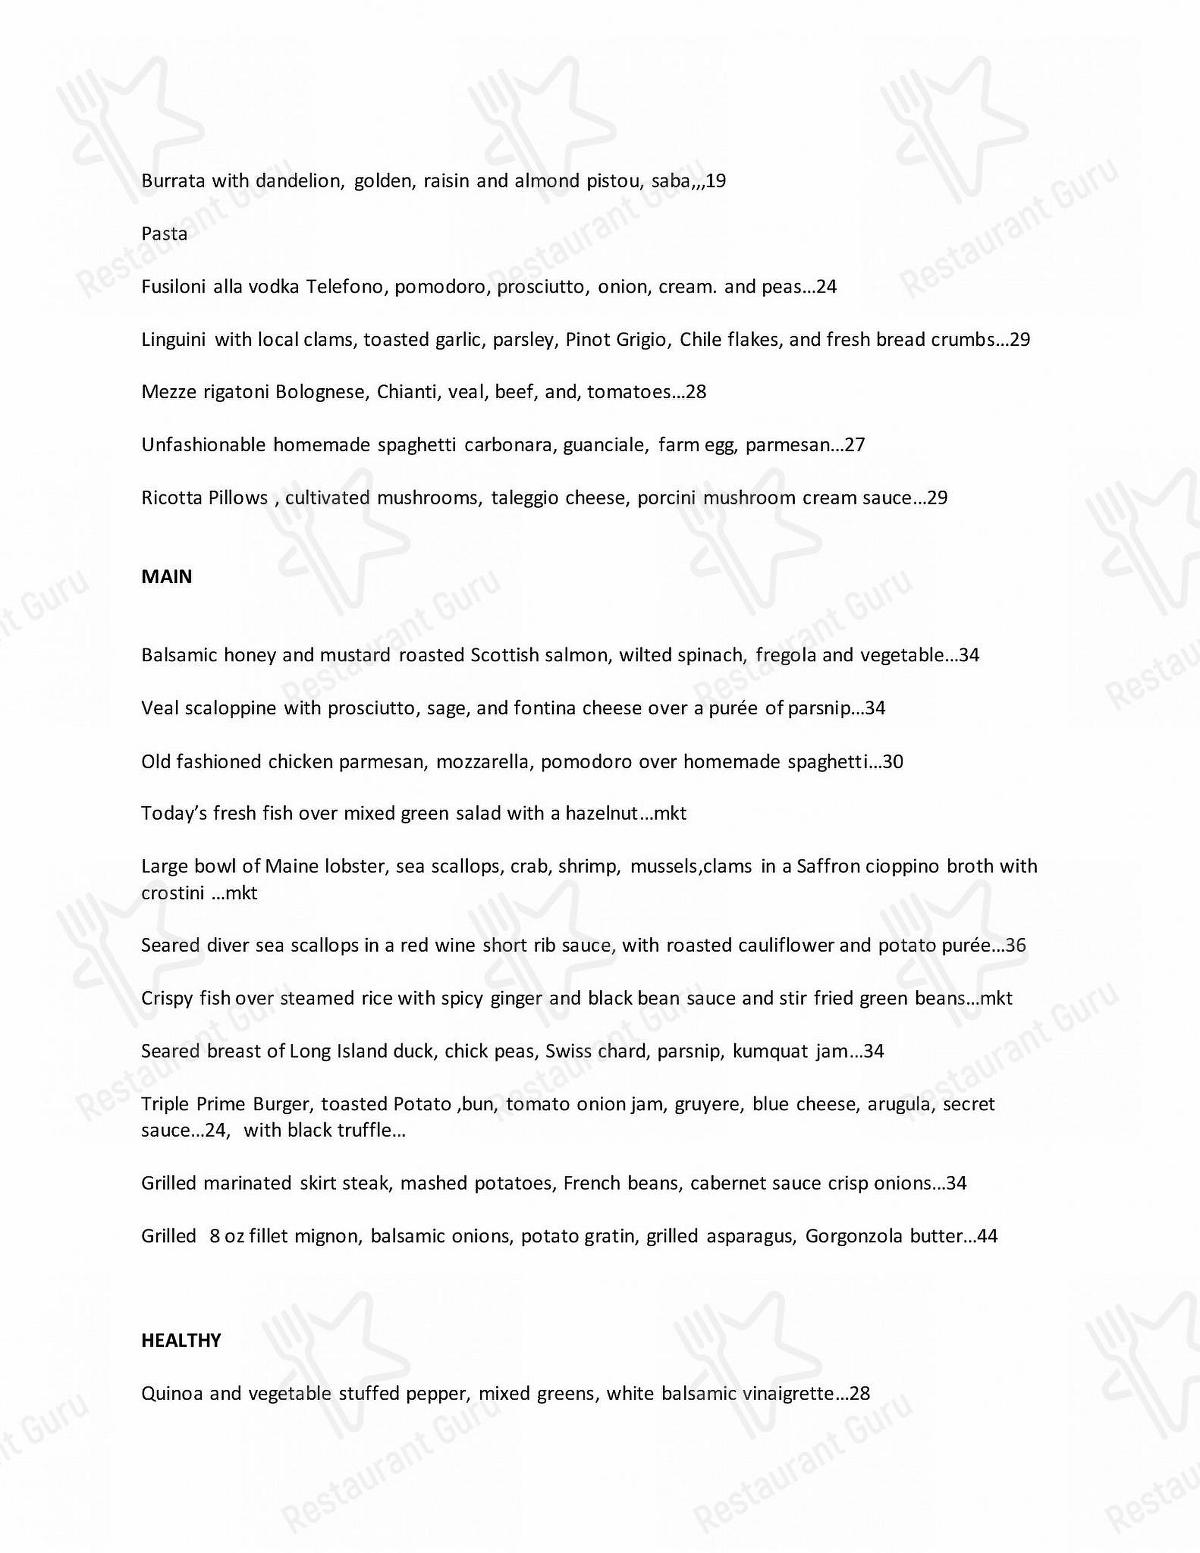 Check out the menu for 75 Main